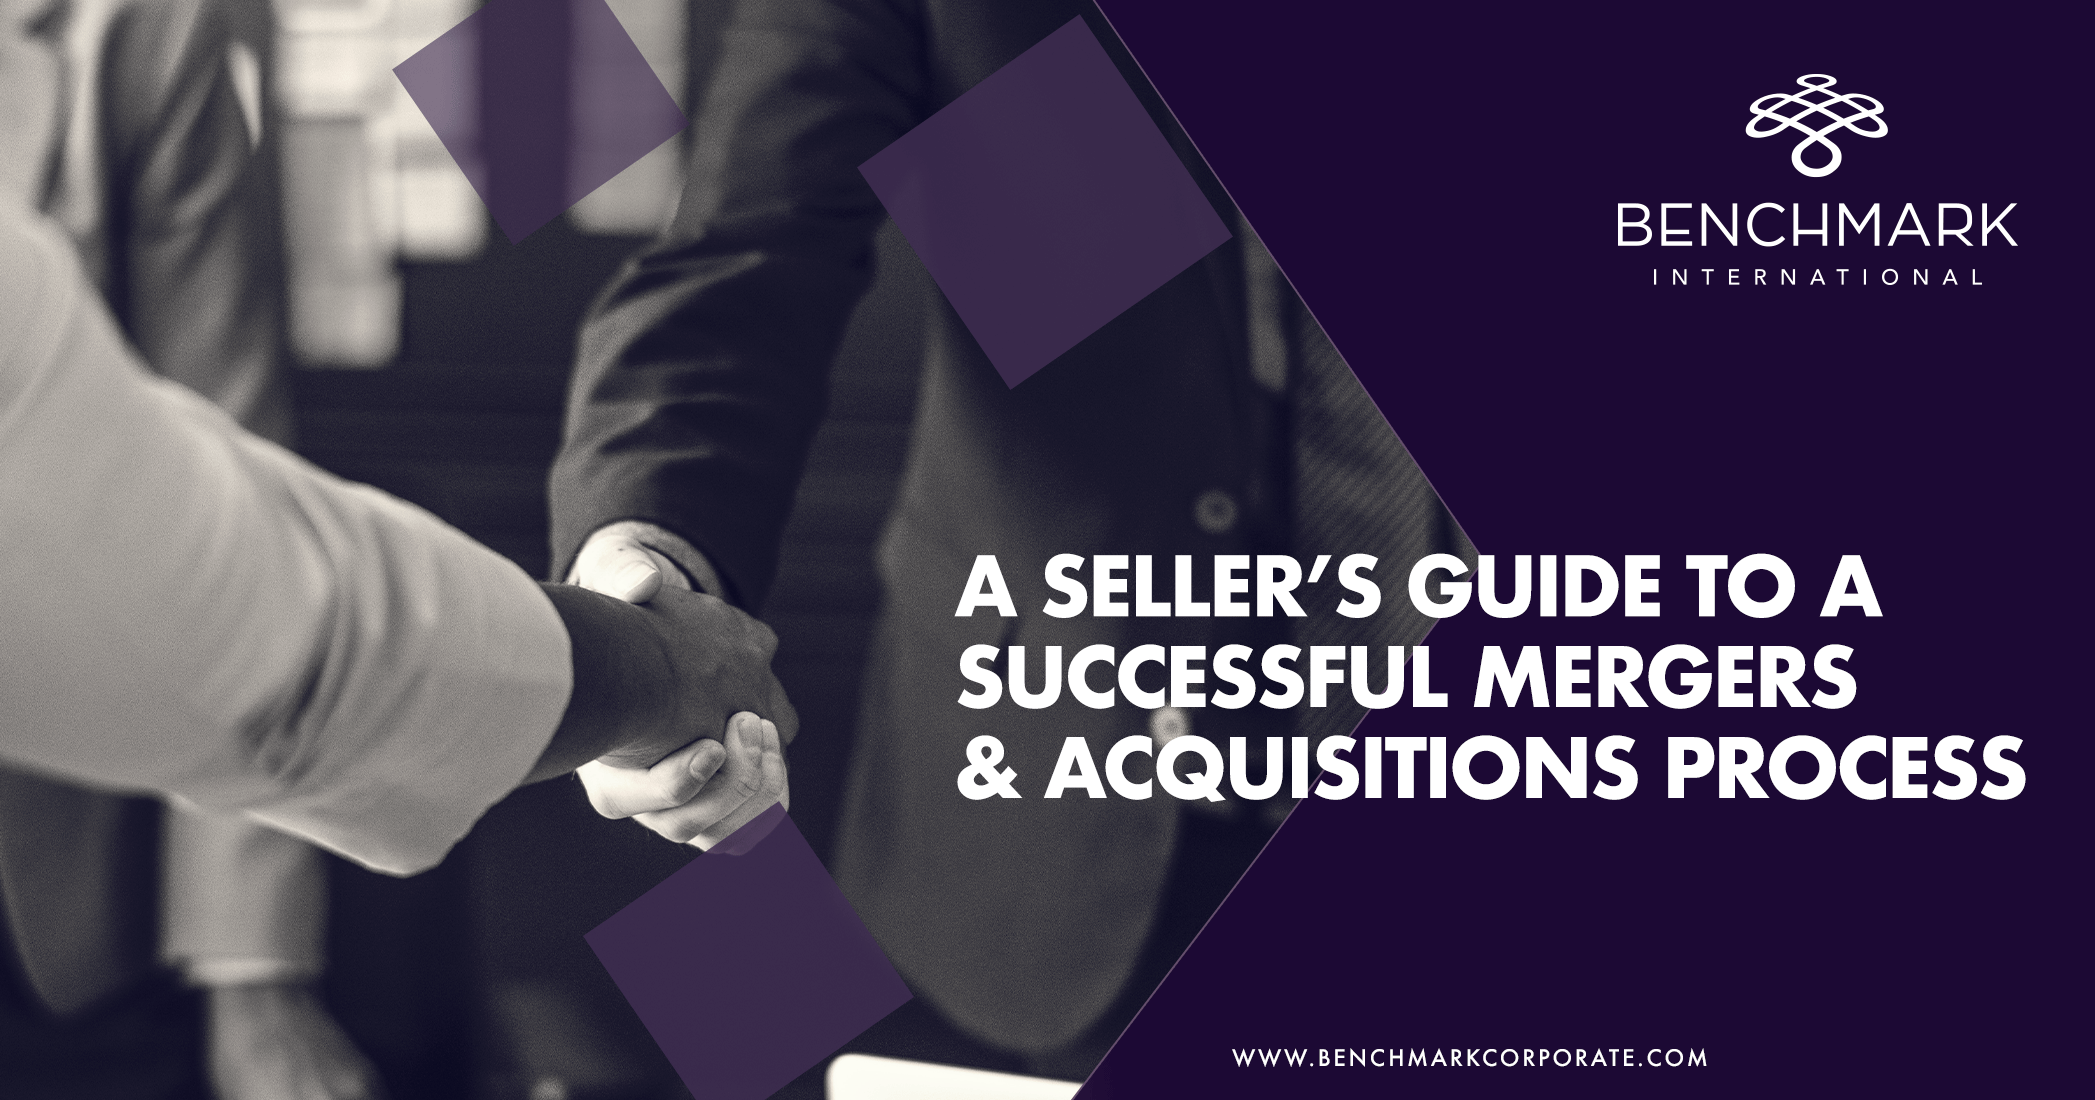 A-Successful-Guide-to-Mergers-and-Acquisitions_blog